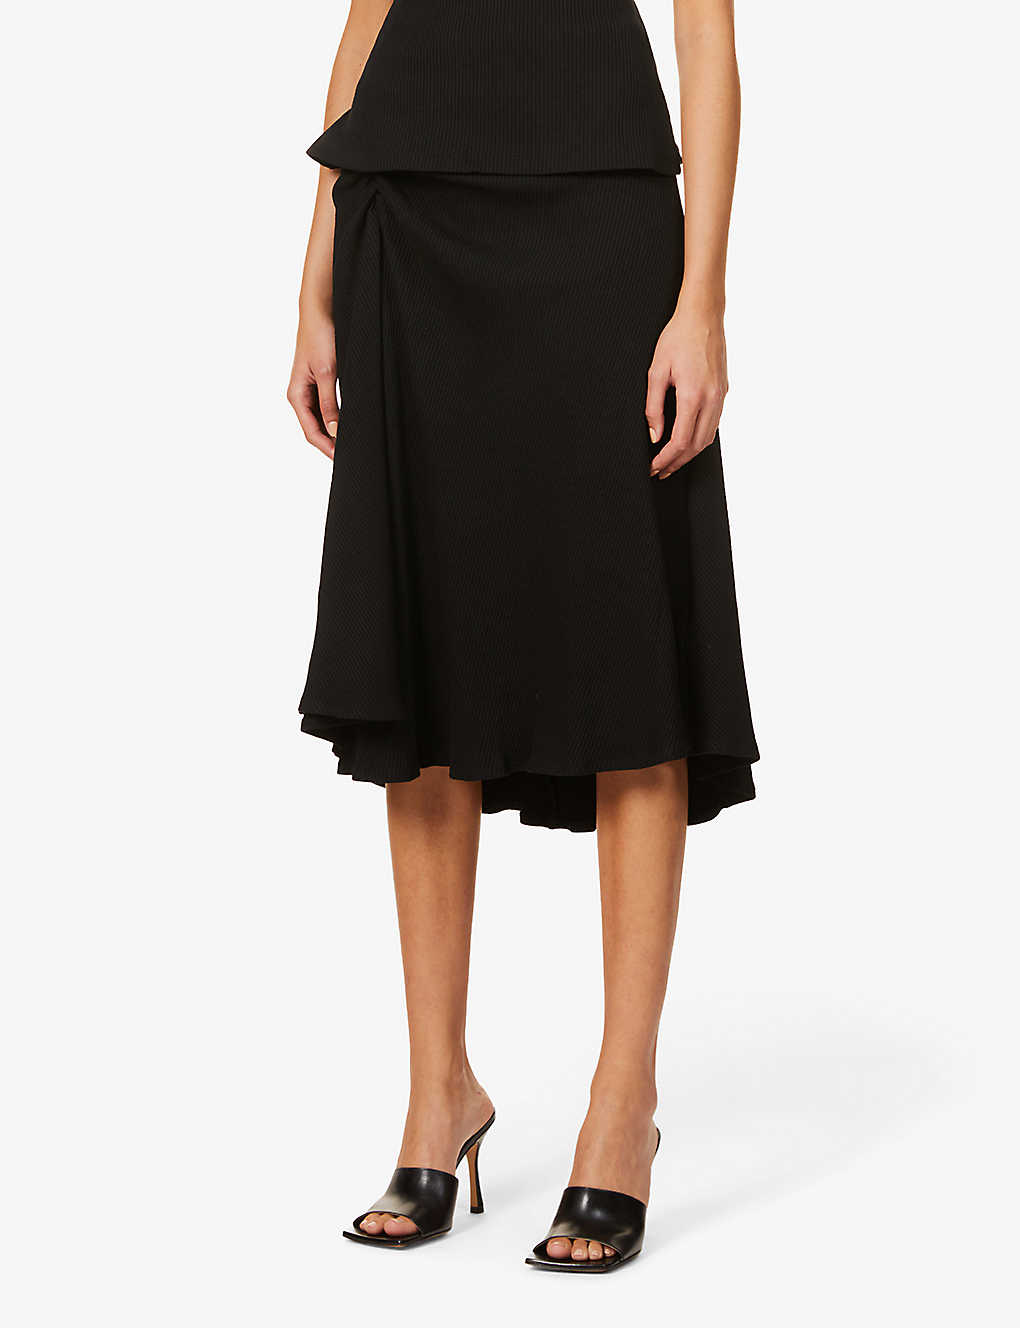 MAGGIE MARILYN: Together We Stand ribbed high-waist stretch-knitted midi skirt